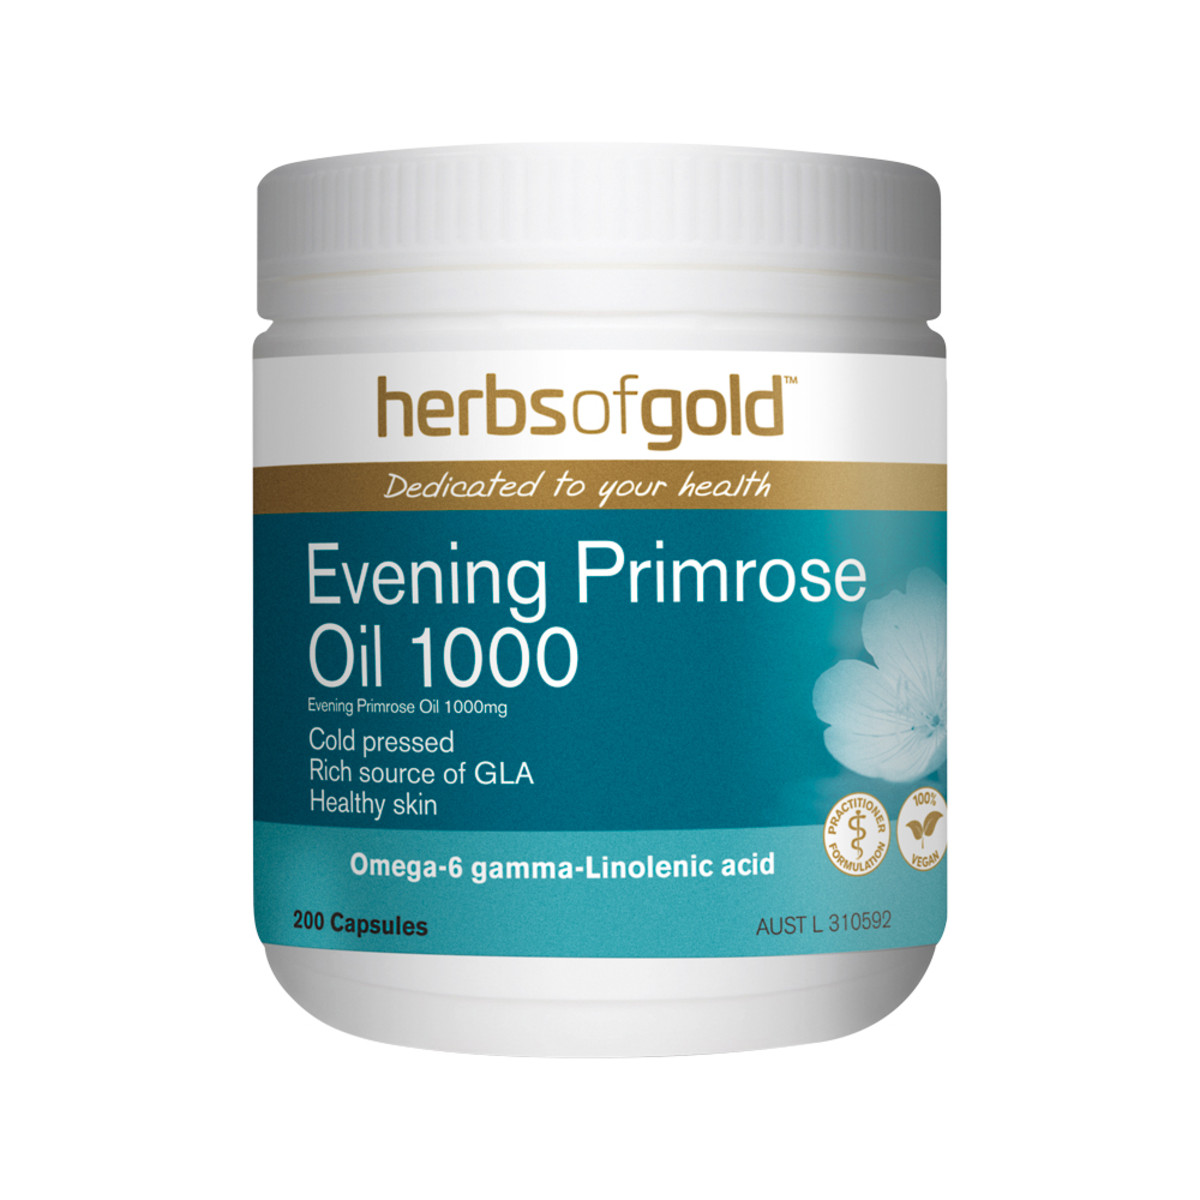 Image of Herbs of Gold Evening Primrose Oil 1000mg 200caps- only $14.95